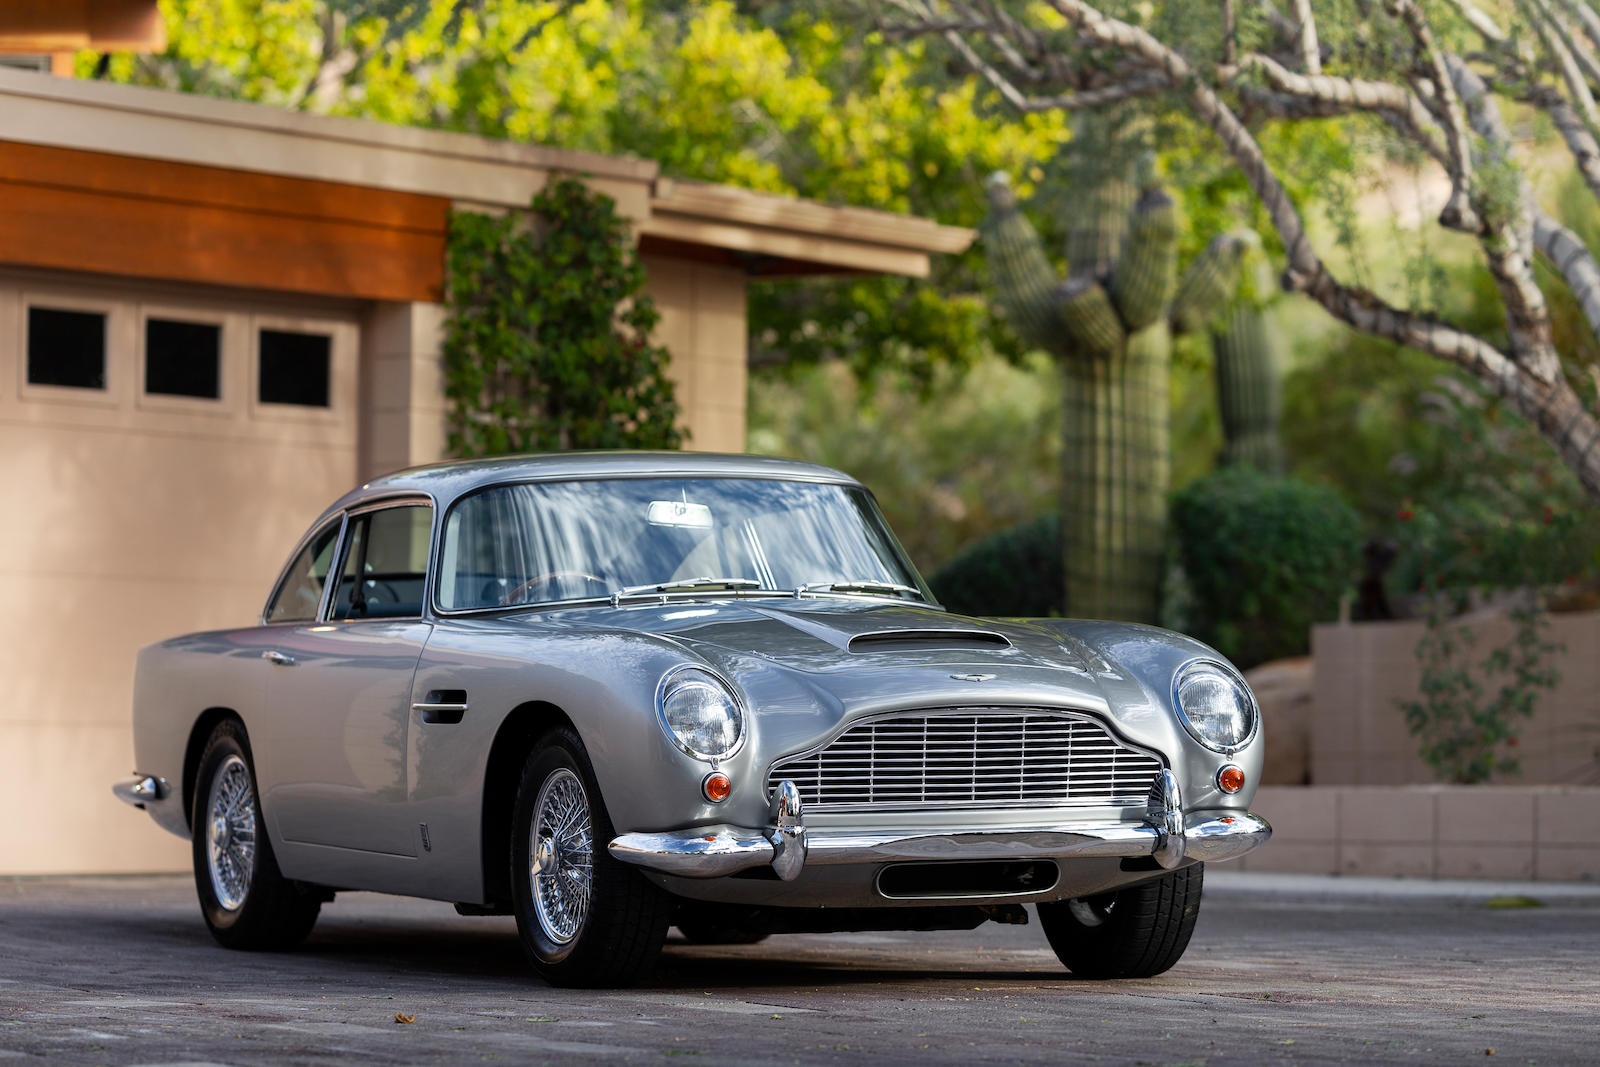 The 7 most expensive British cars at the 2019 Arizona Auctions thumbnail